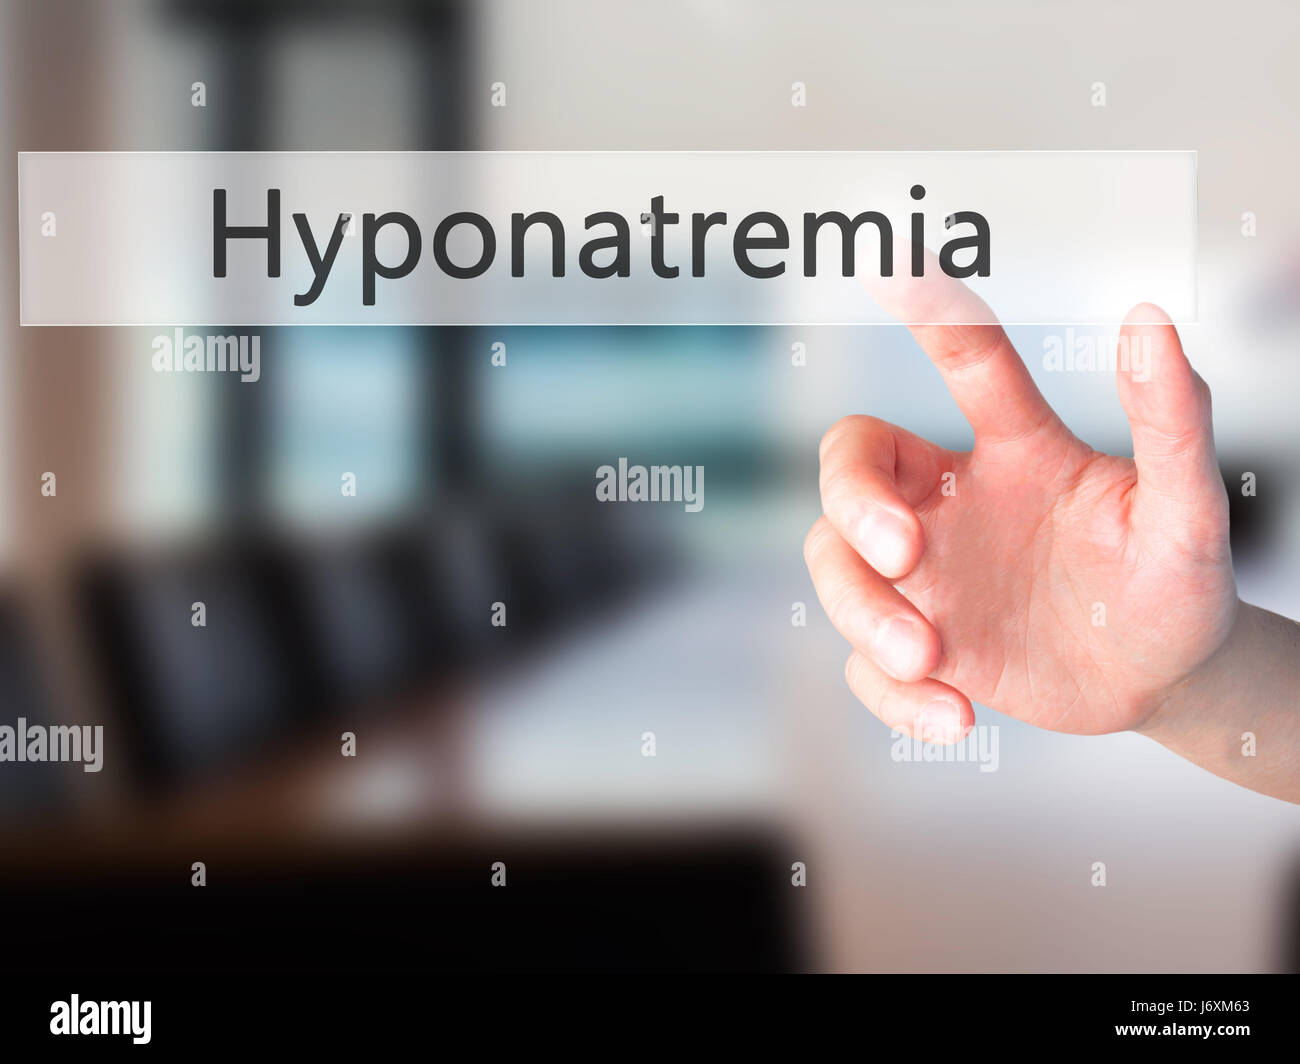 Hyponatremia - Hand pressing a button on blurred background concept . Business, technology, internet concept. Stock - Stock Image